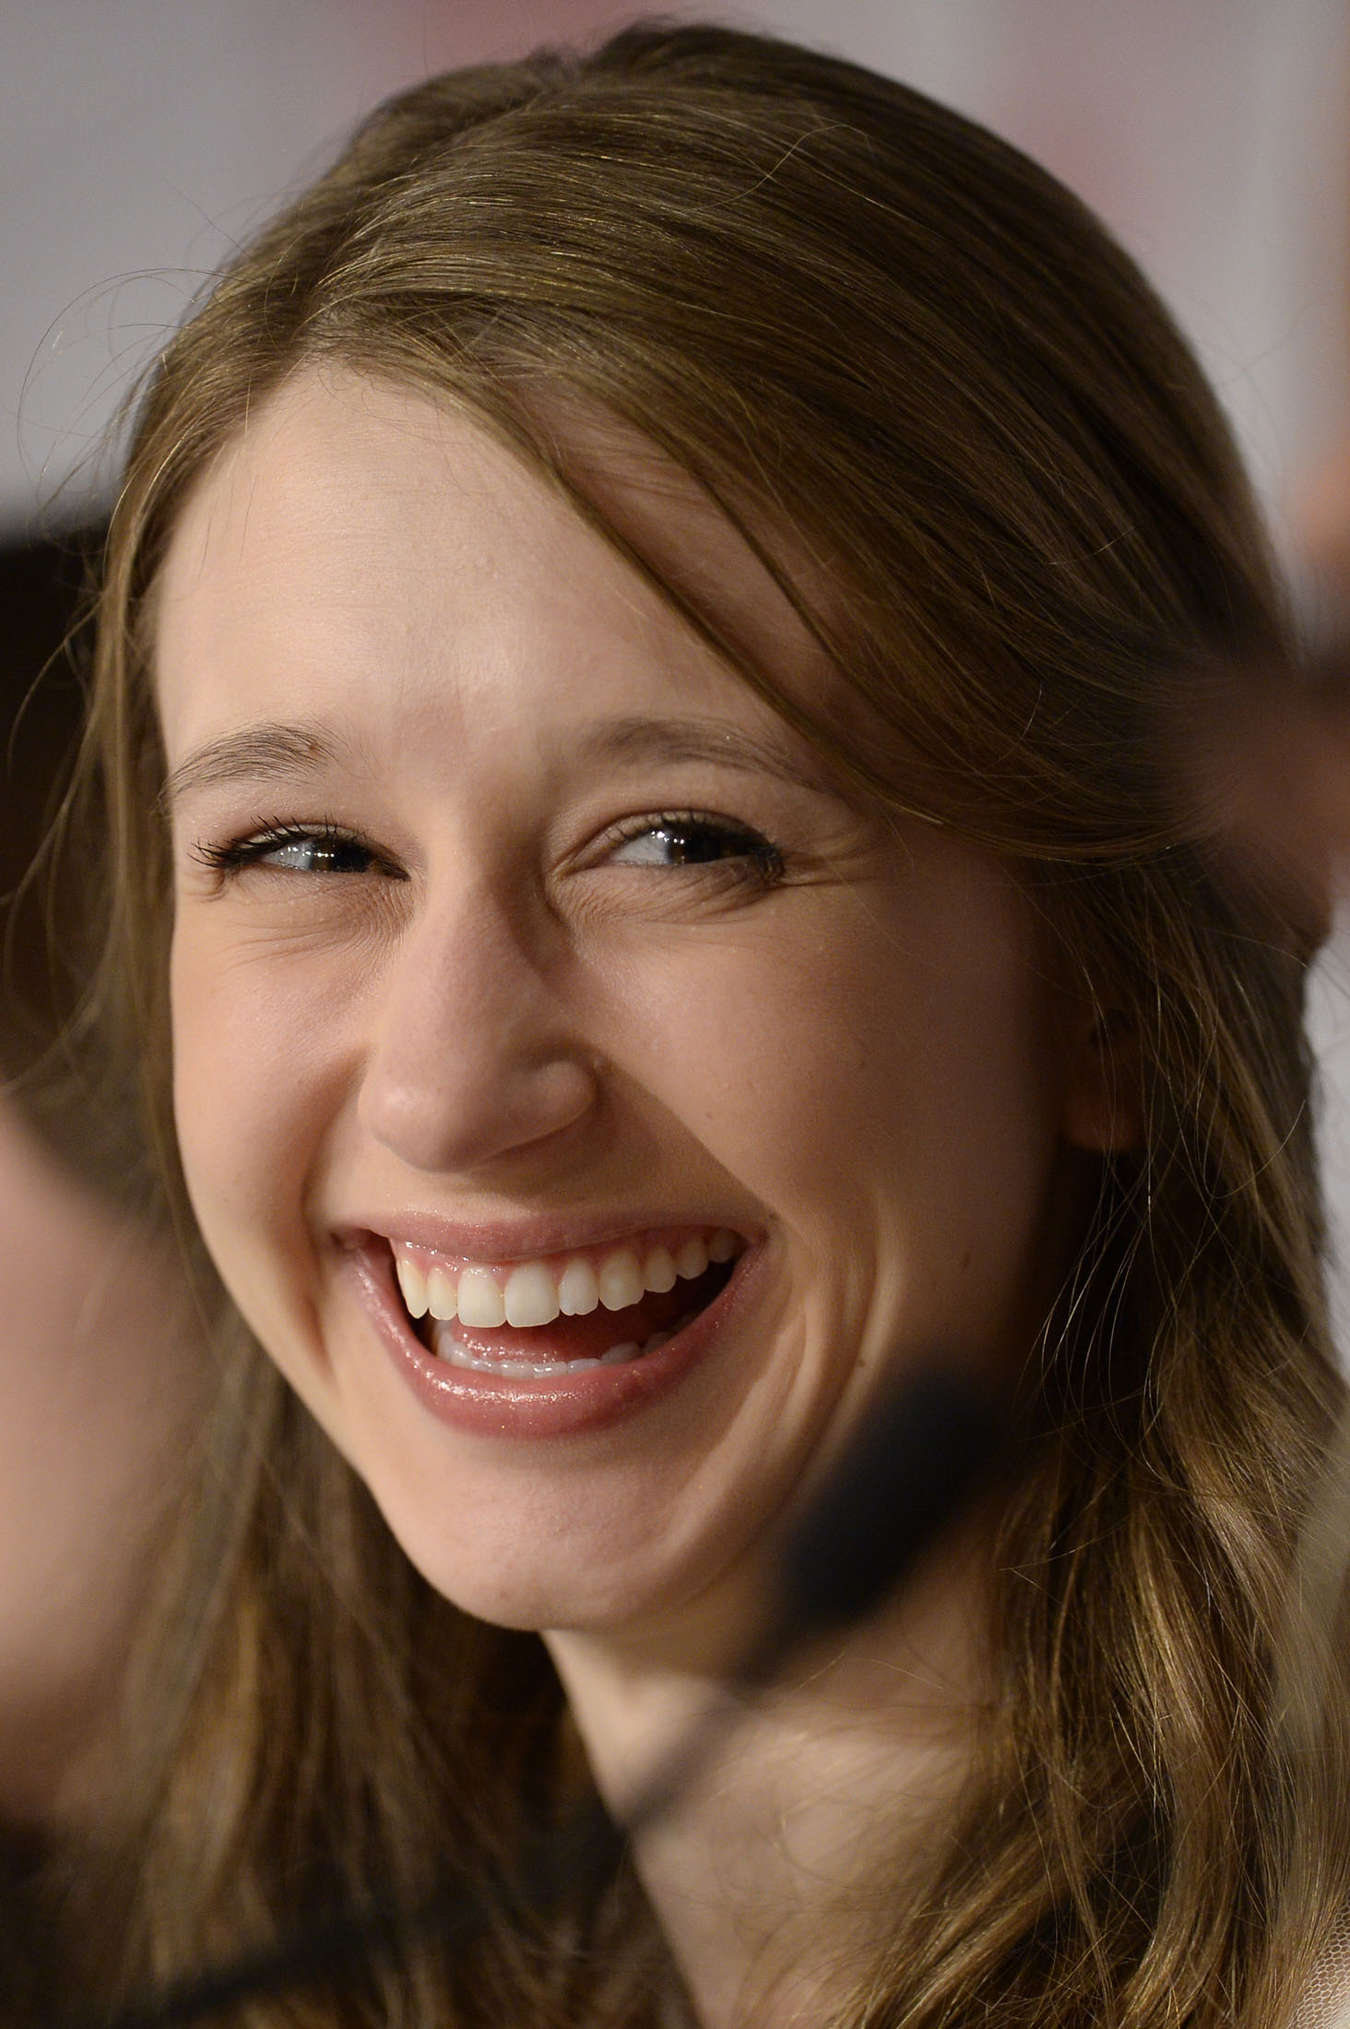 Sister Website Taissa Farmiga Hd Wallpapers For Desktop Download